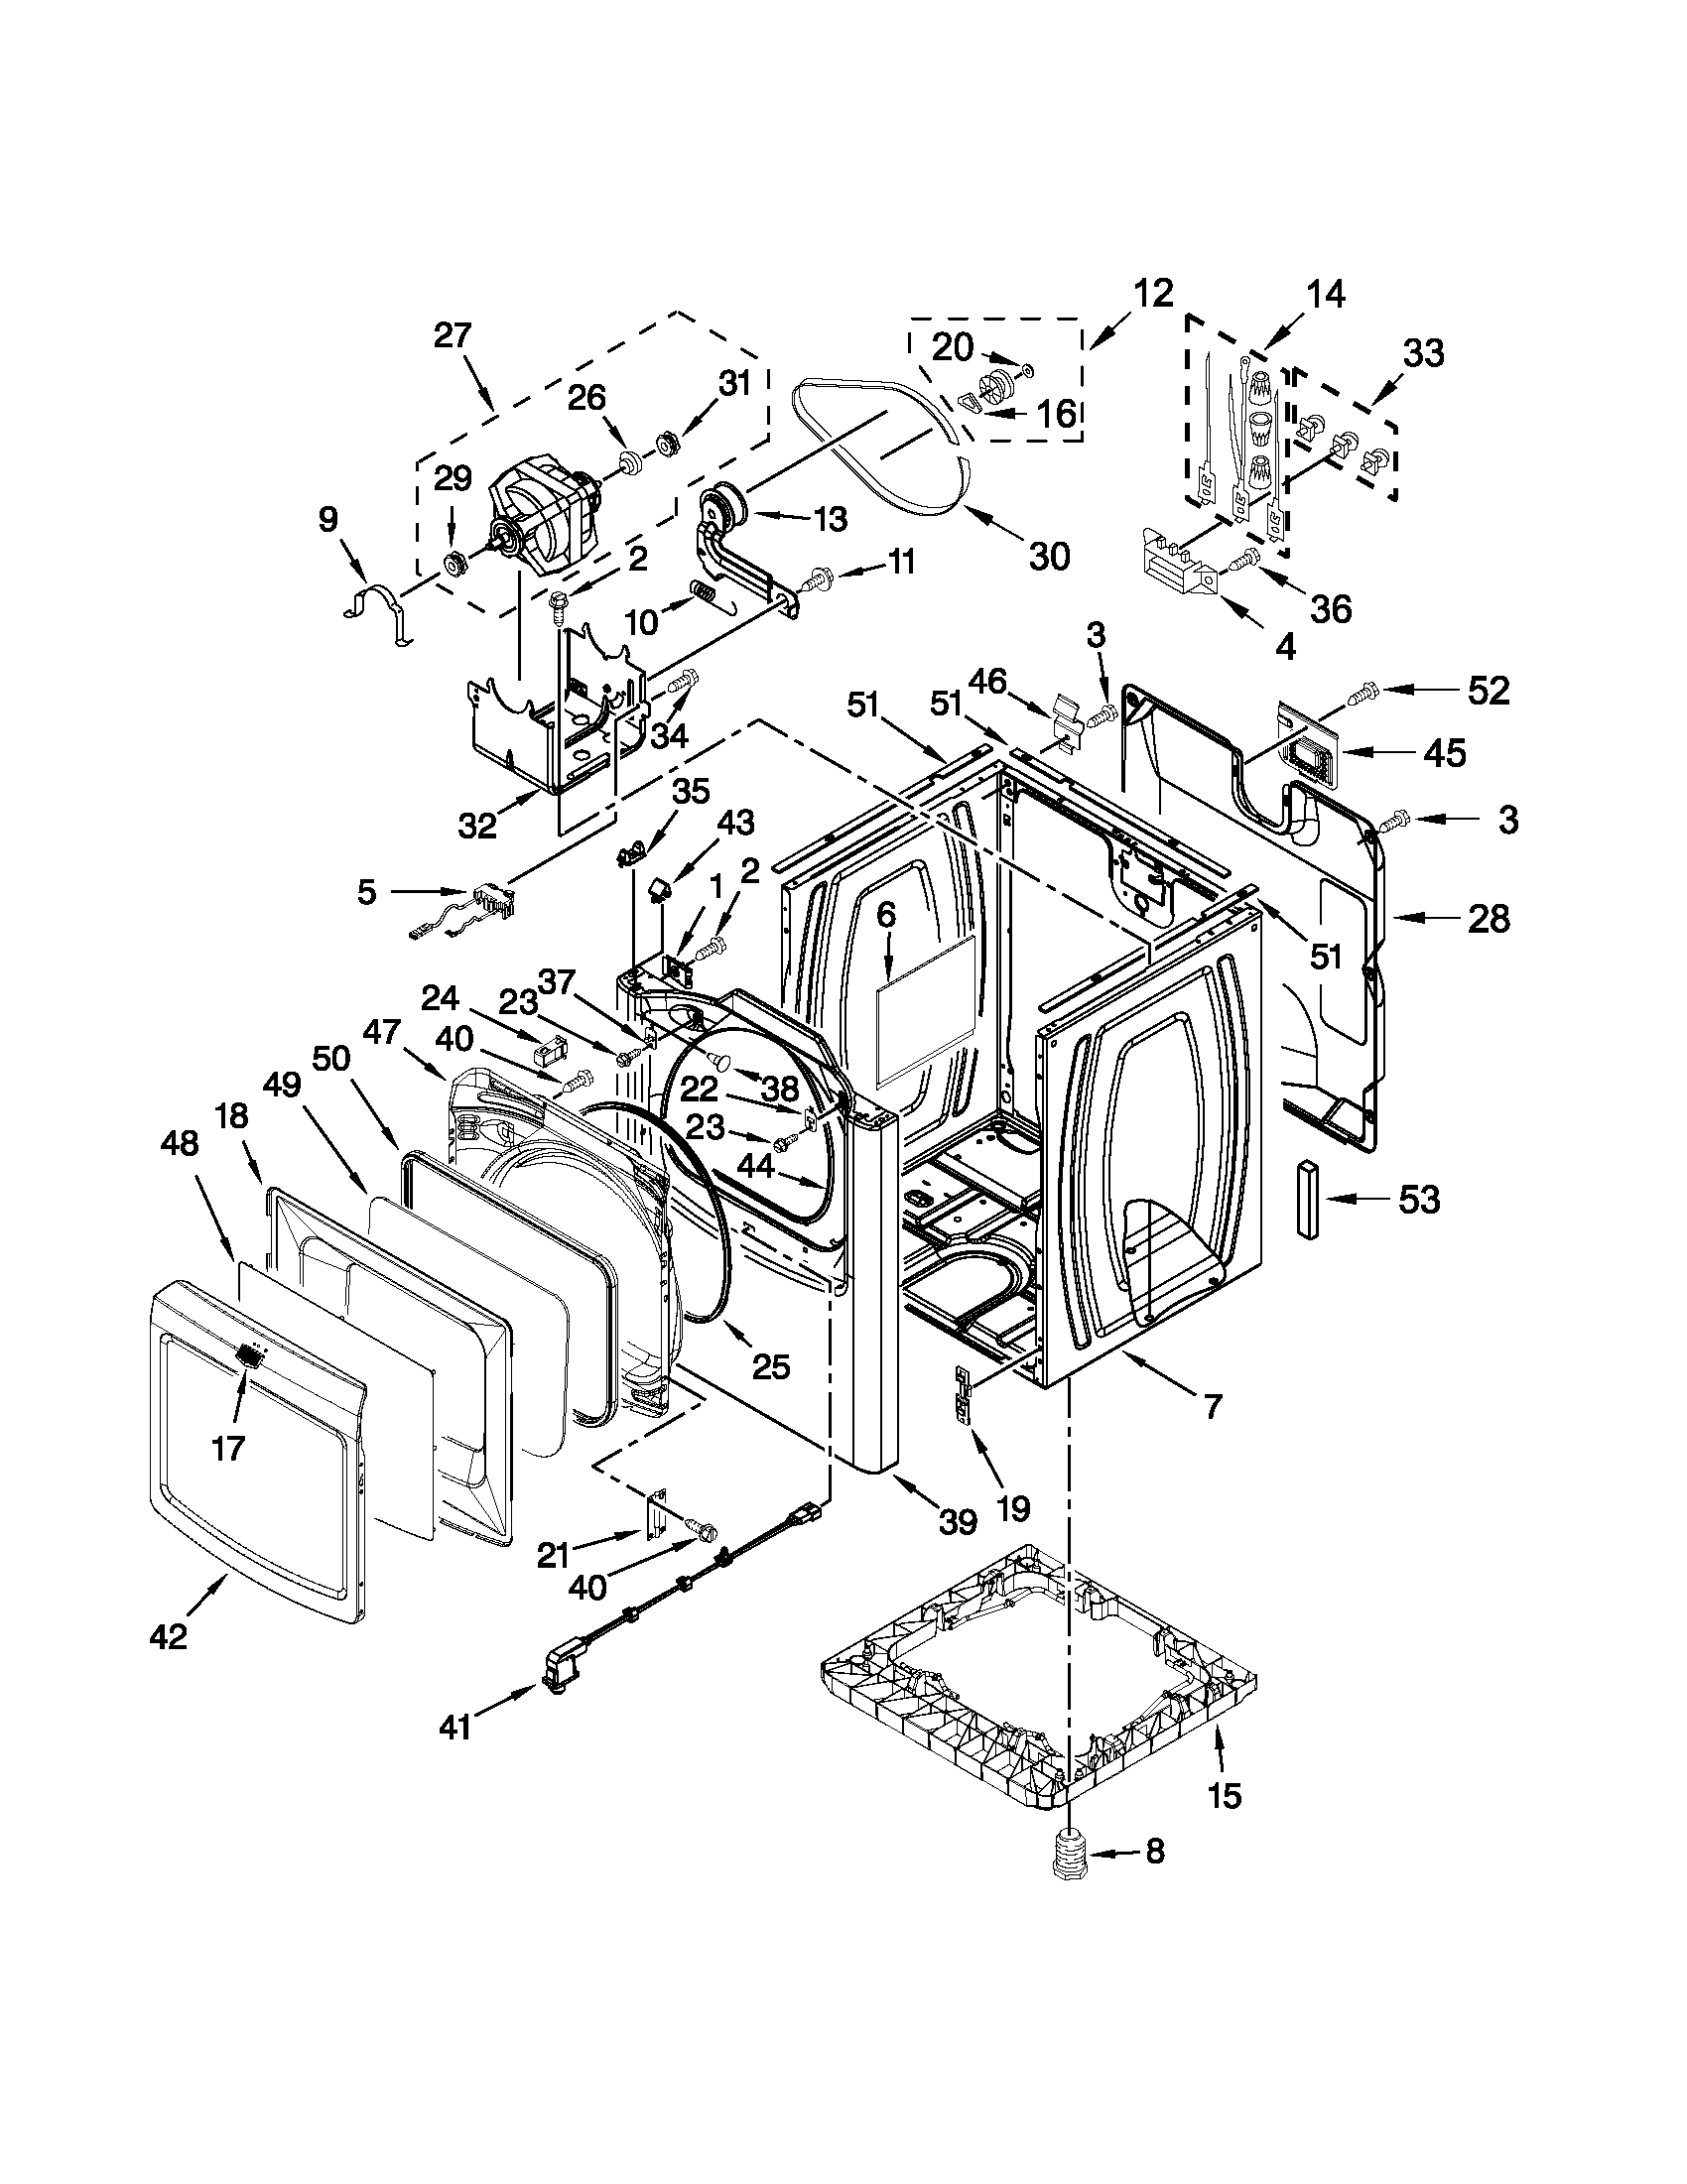 CABINET PARTS Diagram & Parts List for Model medb980bw0